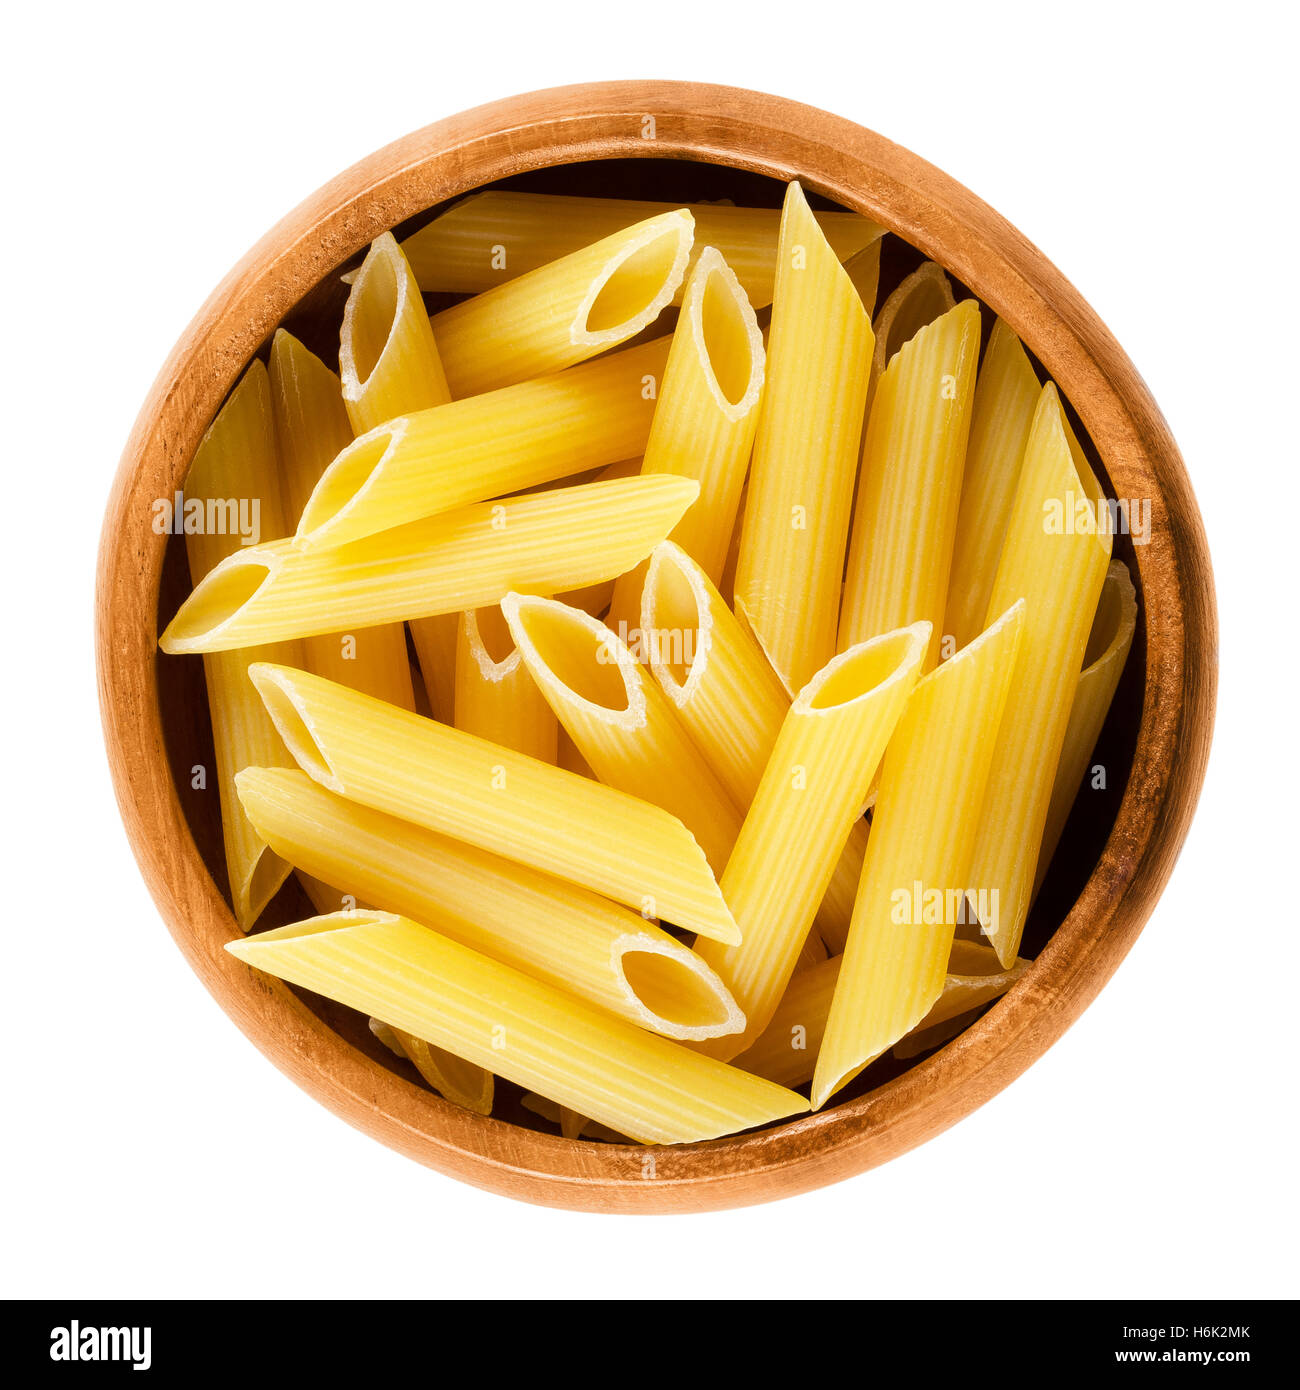 Penne rigate pasta in wooden bowl. Uncooked dried durum wheat semolina noodles. Short-cut medium length tubes with - Stock Image